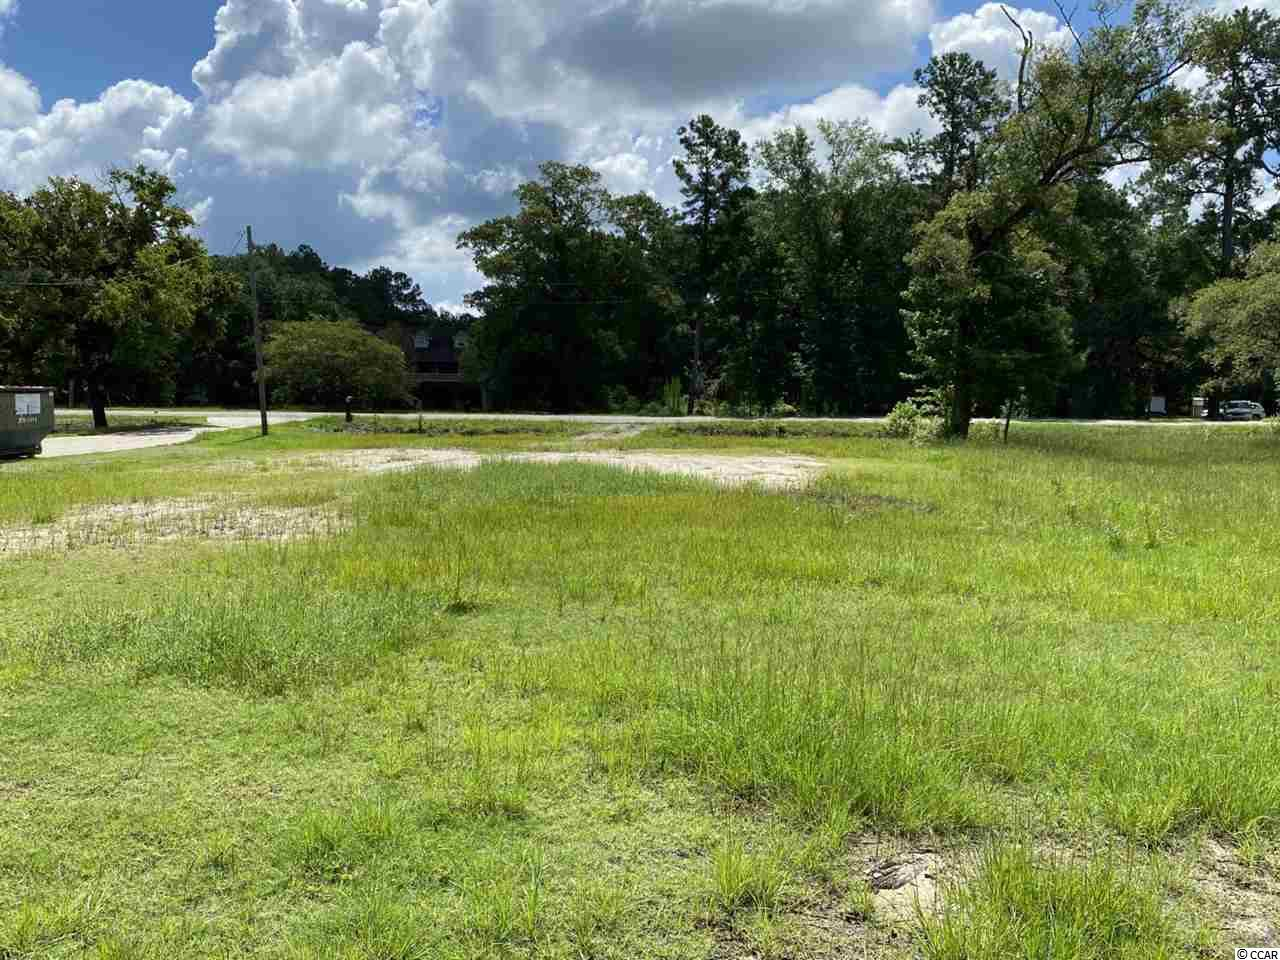 River lot on Waccamaw. Cleared and ready to build. Unique location provides prestigious views to the right and left. Bulkhead/Seawall installed. Public water and sewer available.